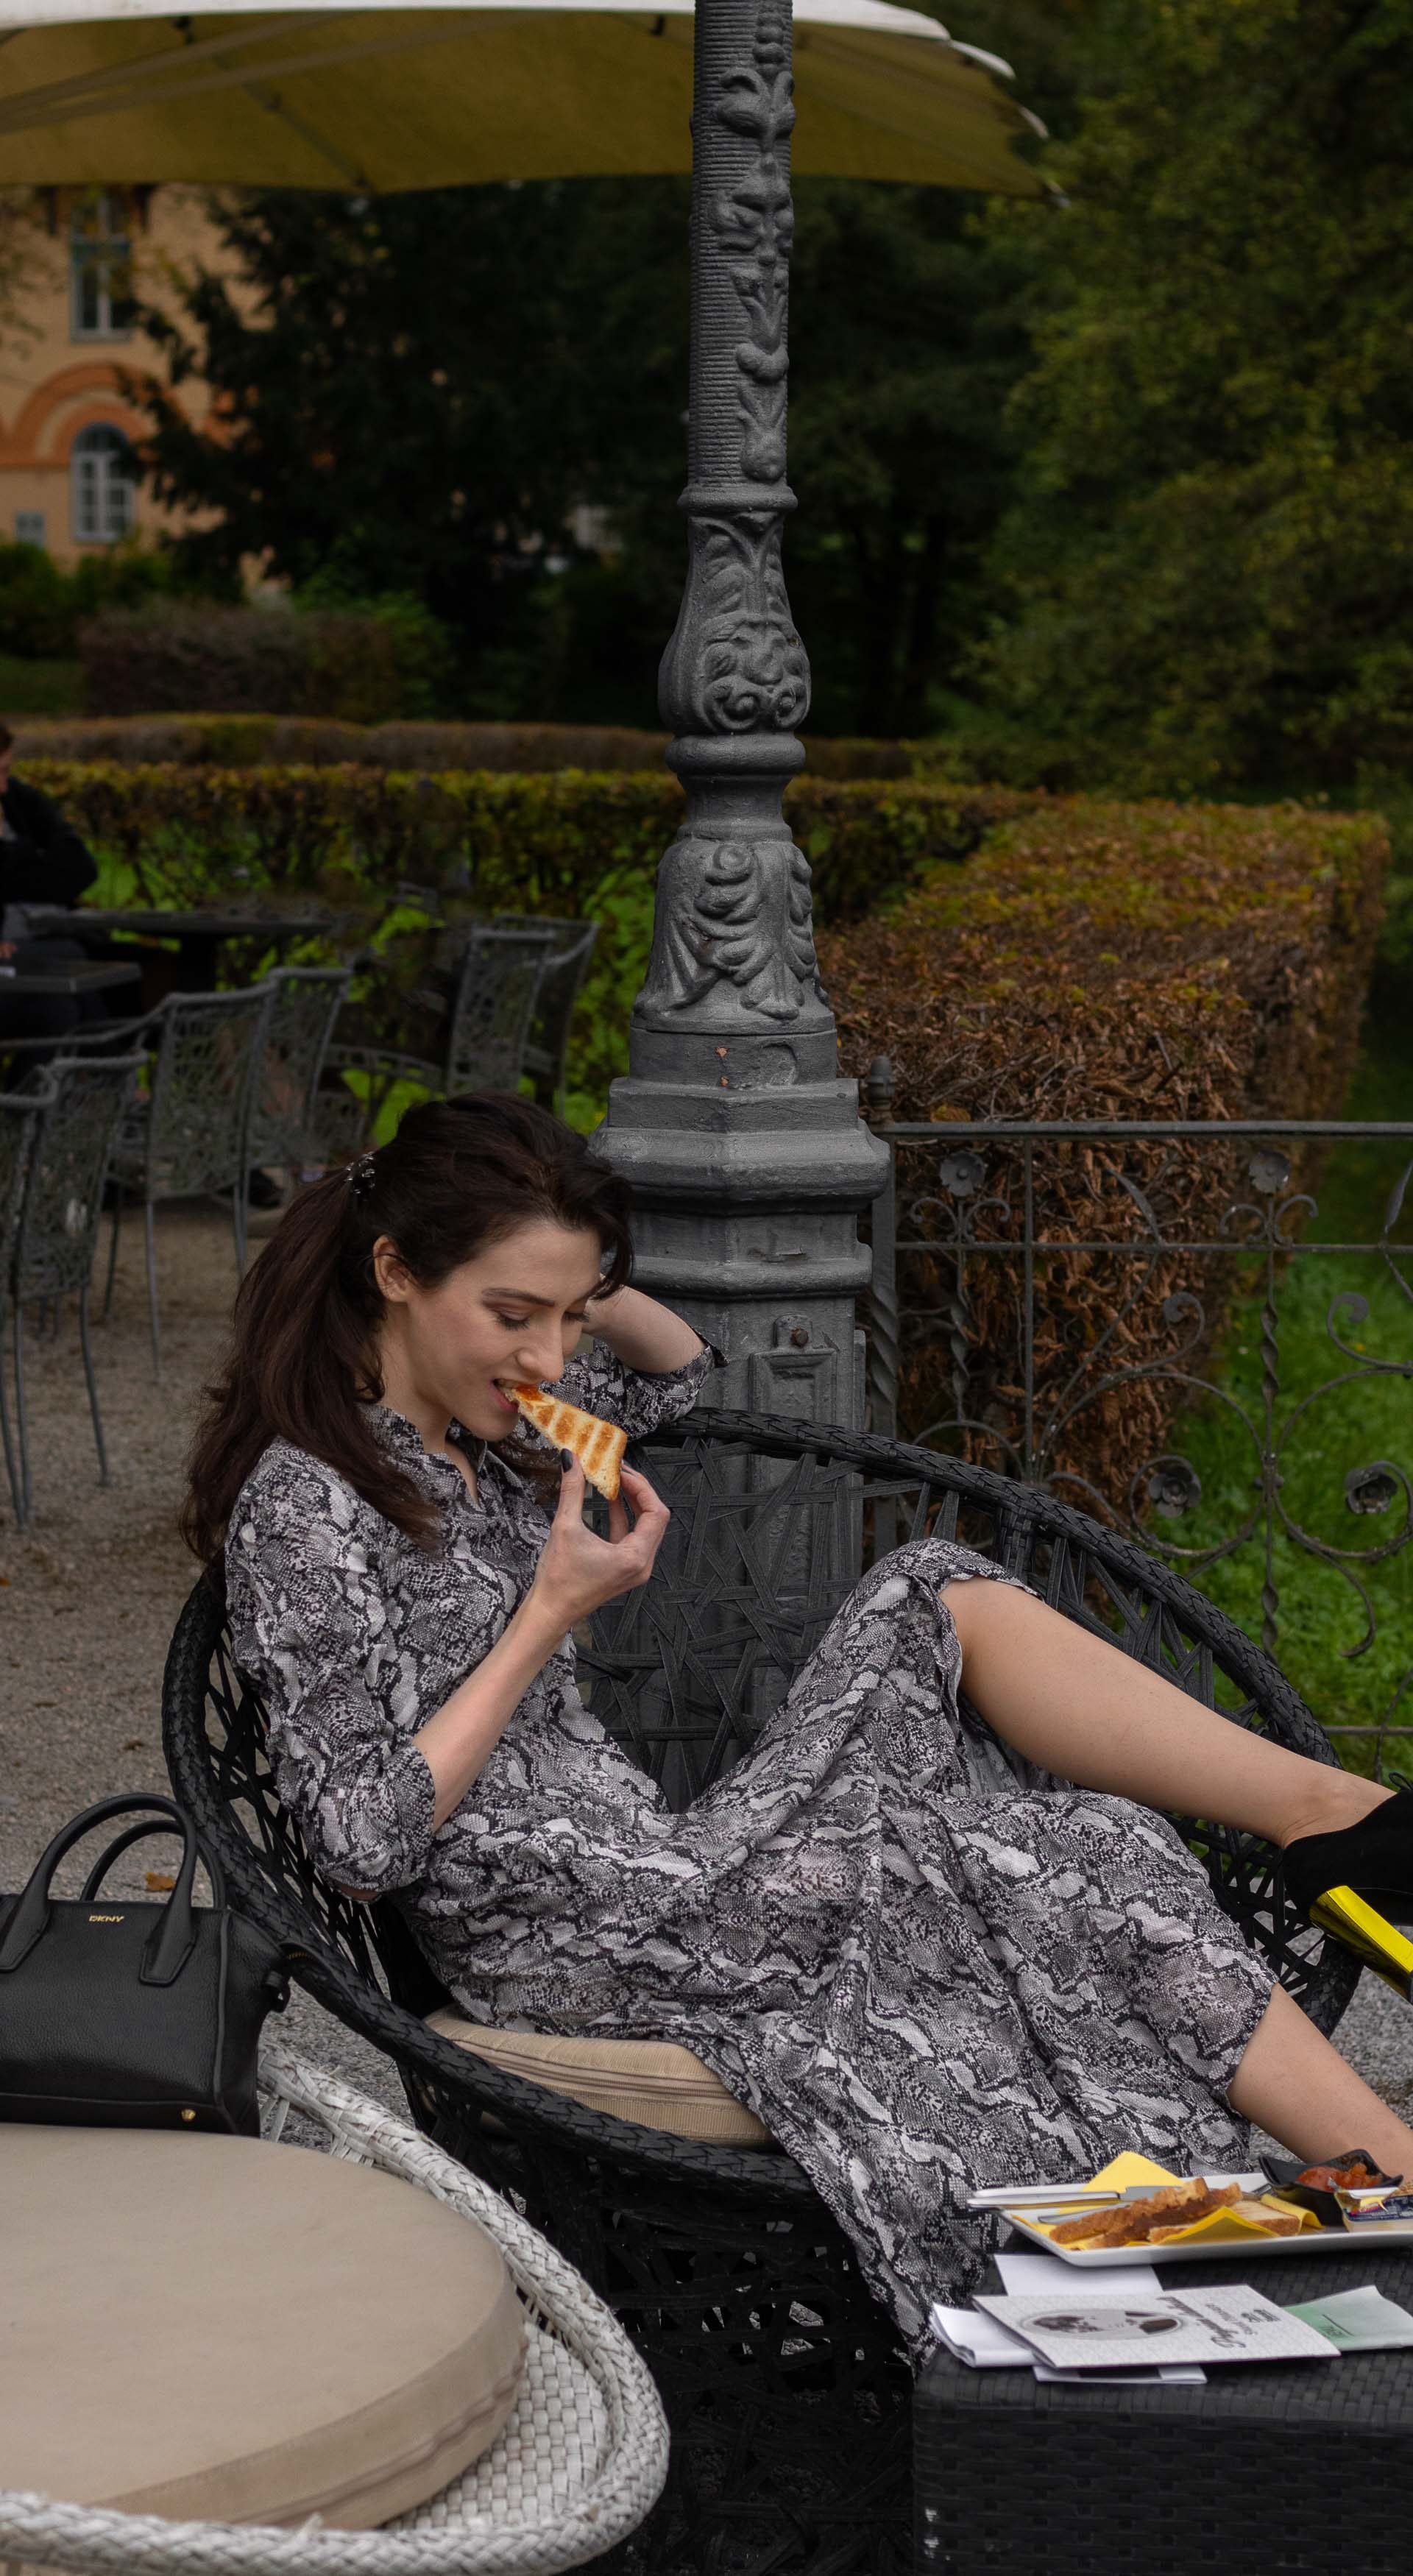 Fashion blogger Veronika Lipar of Brunette from Wall Street wearing grey long snakeskin print dress black Fendi ankle boots with golden heels eating peanut & jelly toast at brunch with girlfriends in fall